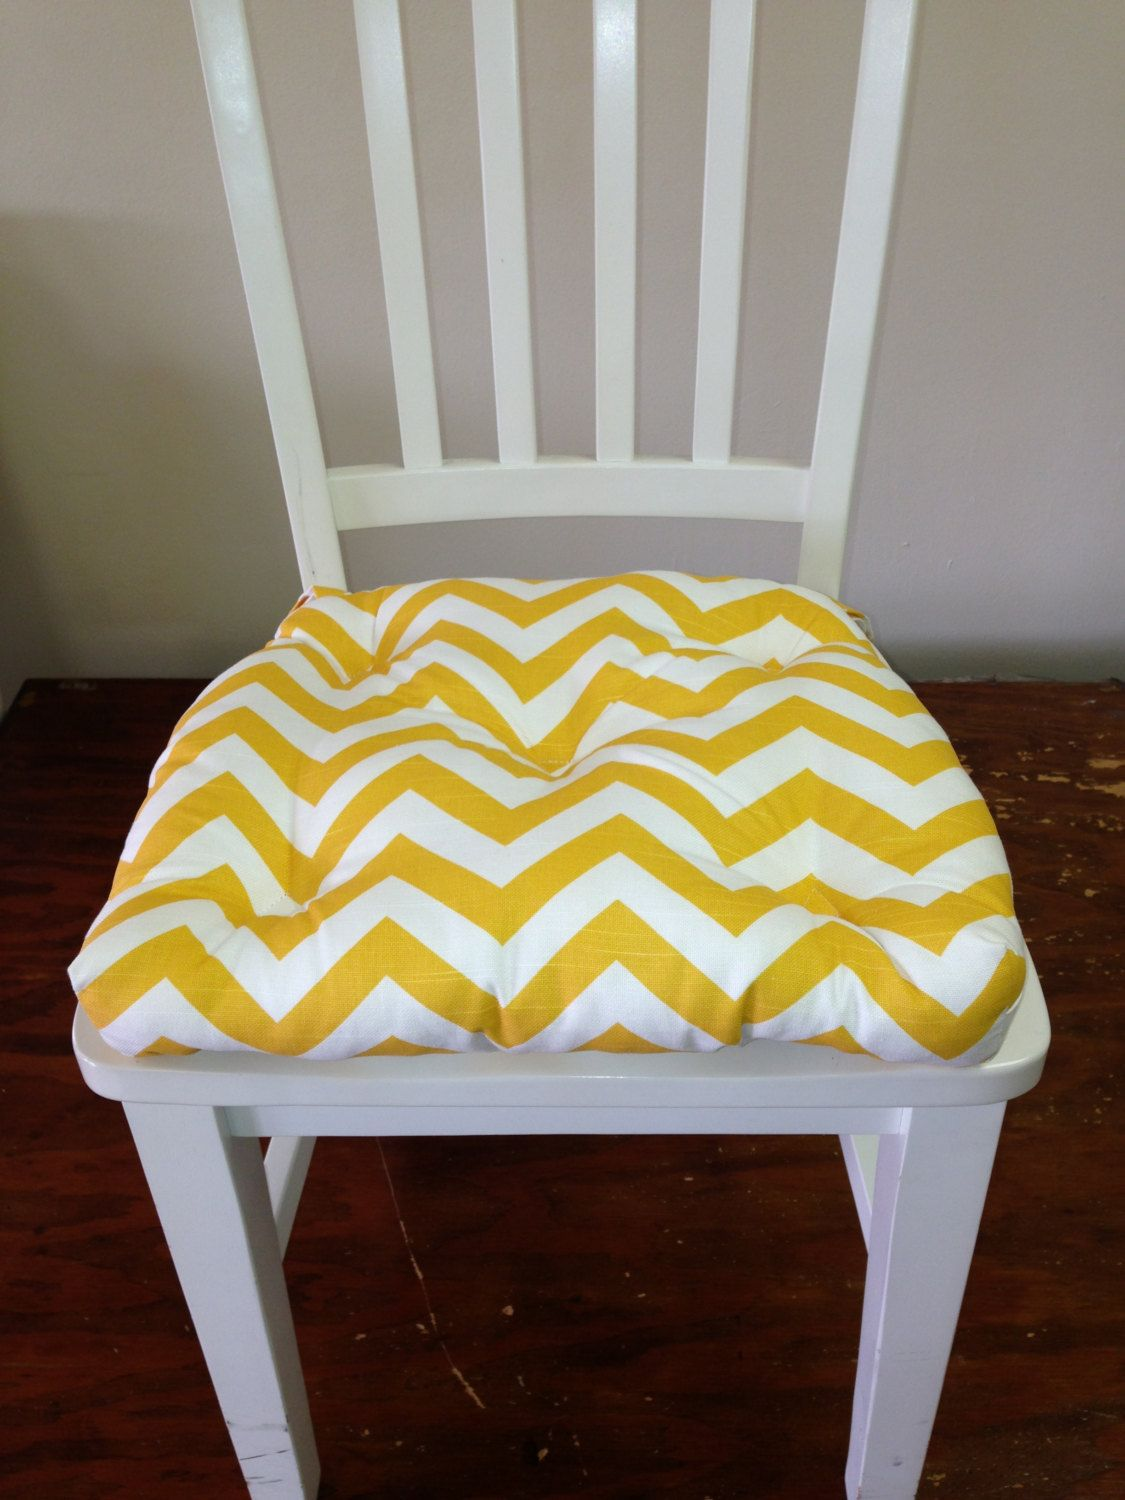 2 piece set of Rocking chair cushions, Tufted, yellow and